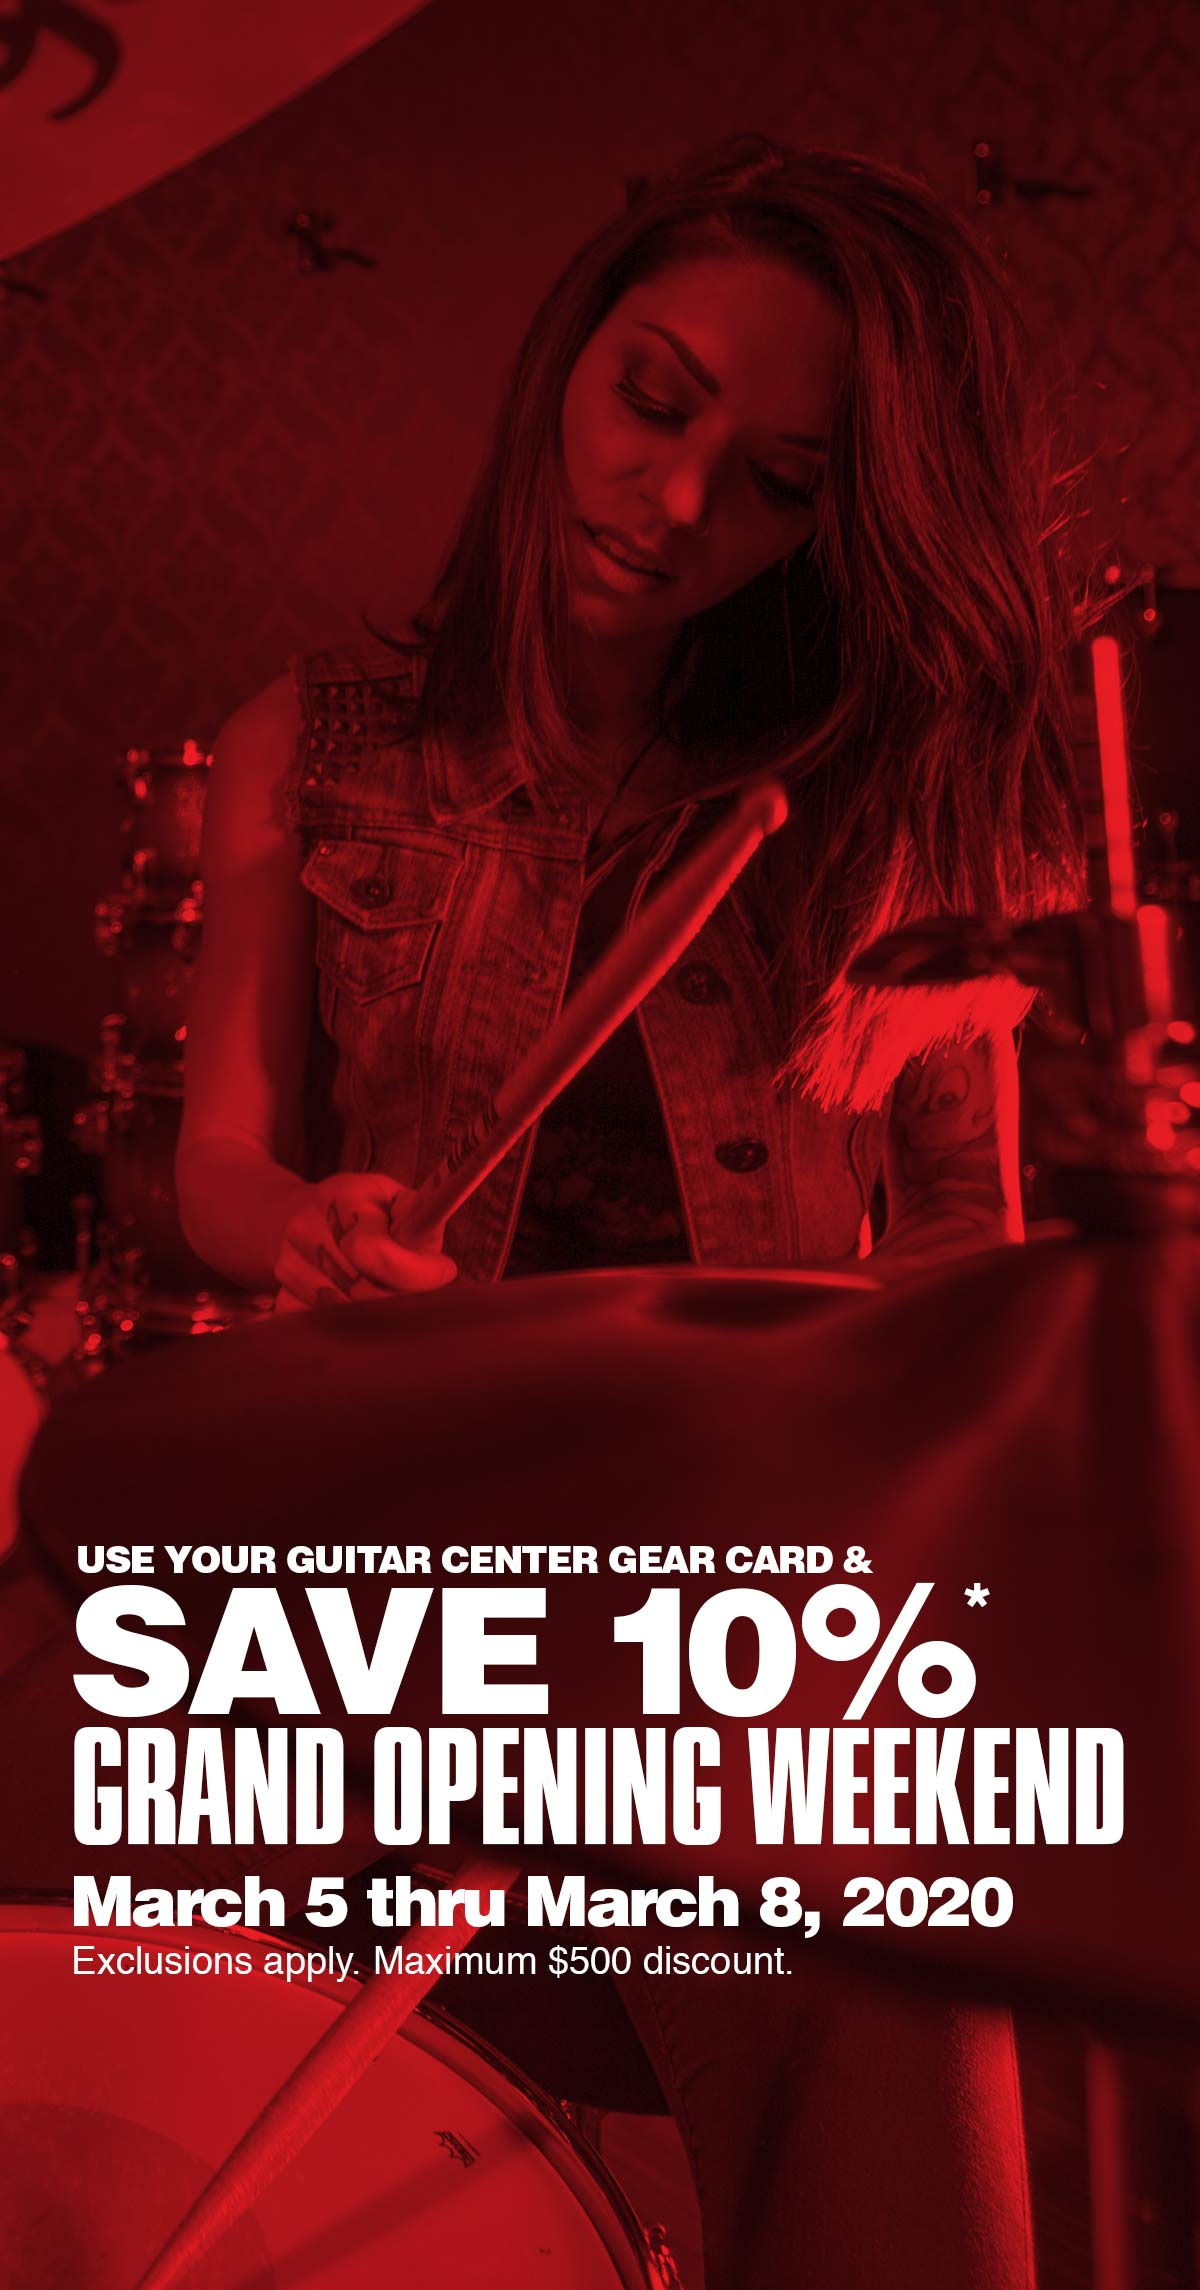 USE YOUR GUITAR CENTER GEAR CARD AND SAVE 10%* GRAND OPENING WEEKEND March 5 thru March 8, 2020 exclusions apply min 500 dollars discount